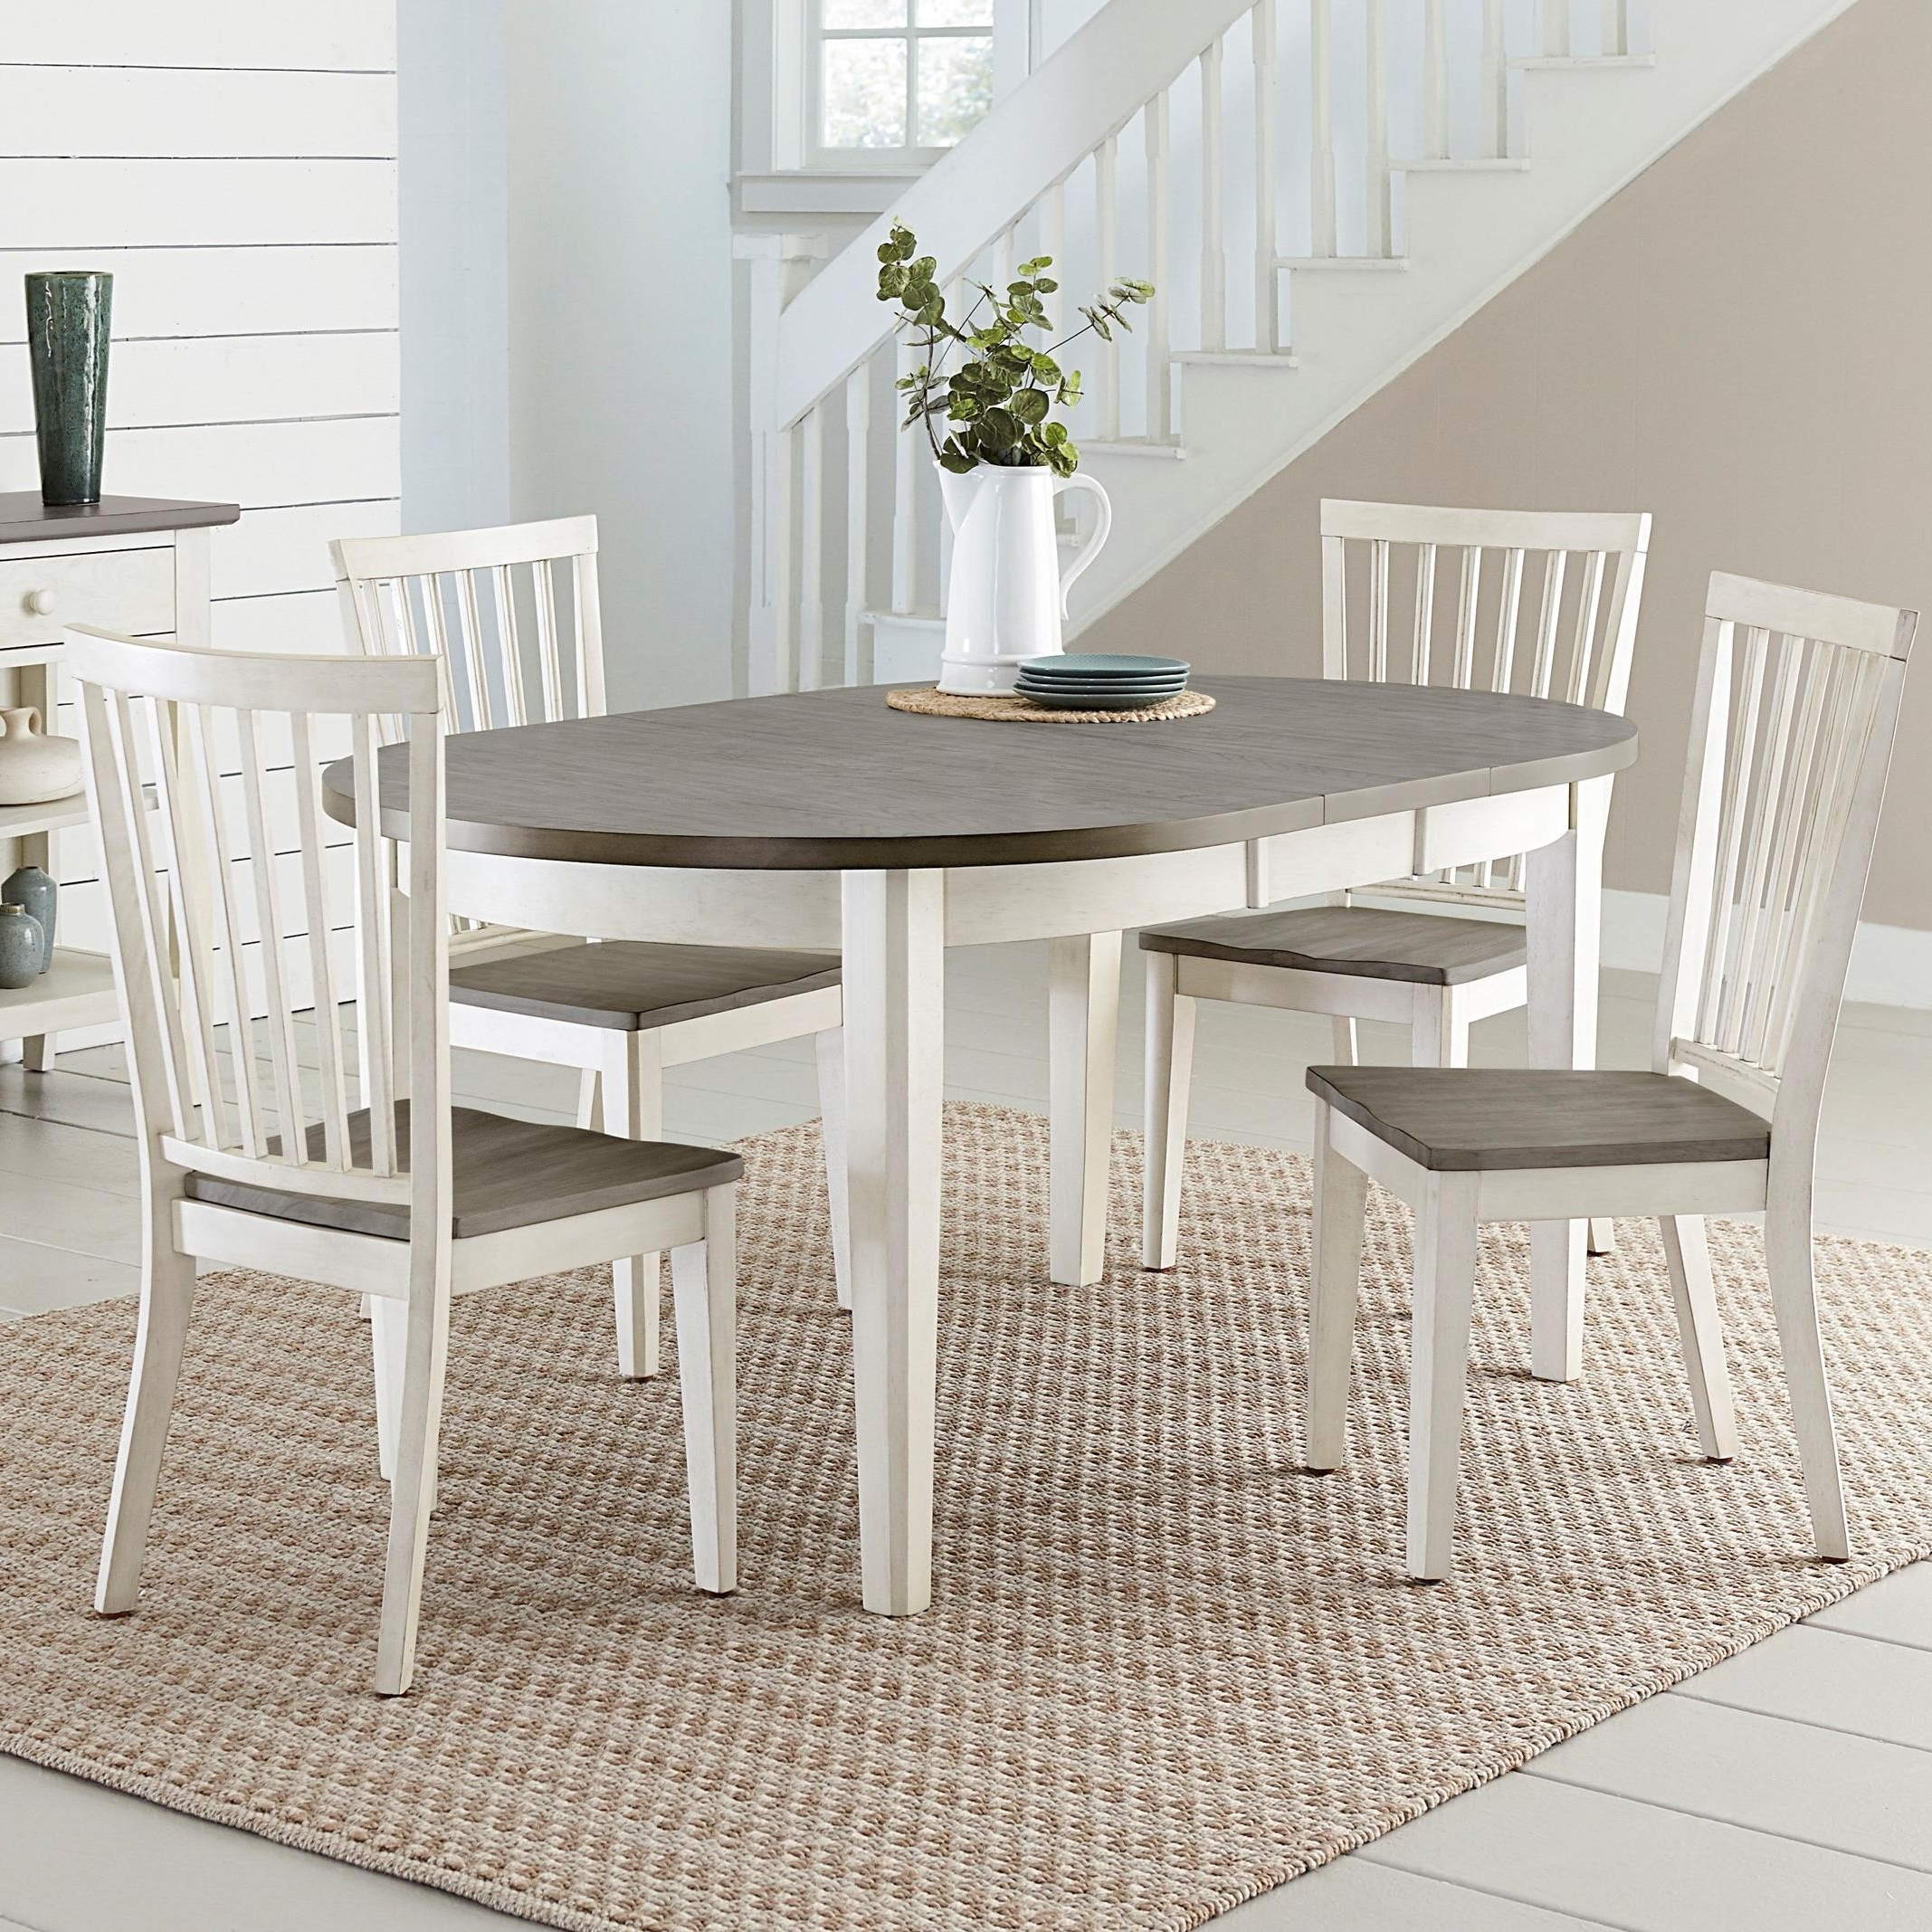 Conover 5 Piece Dining Sets Within Popular Progressive Furniture Lancaster Casual 5 Piece Dining Set With Two (View 12 of 25)